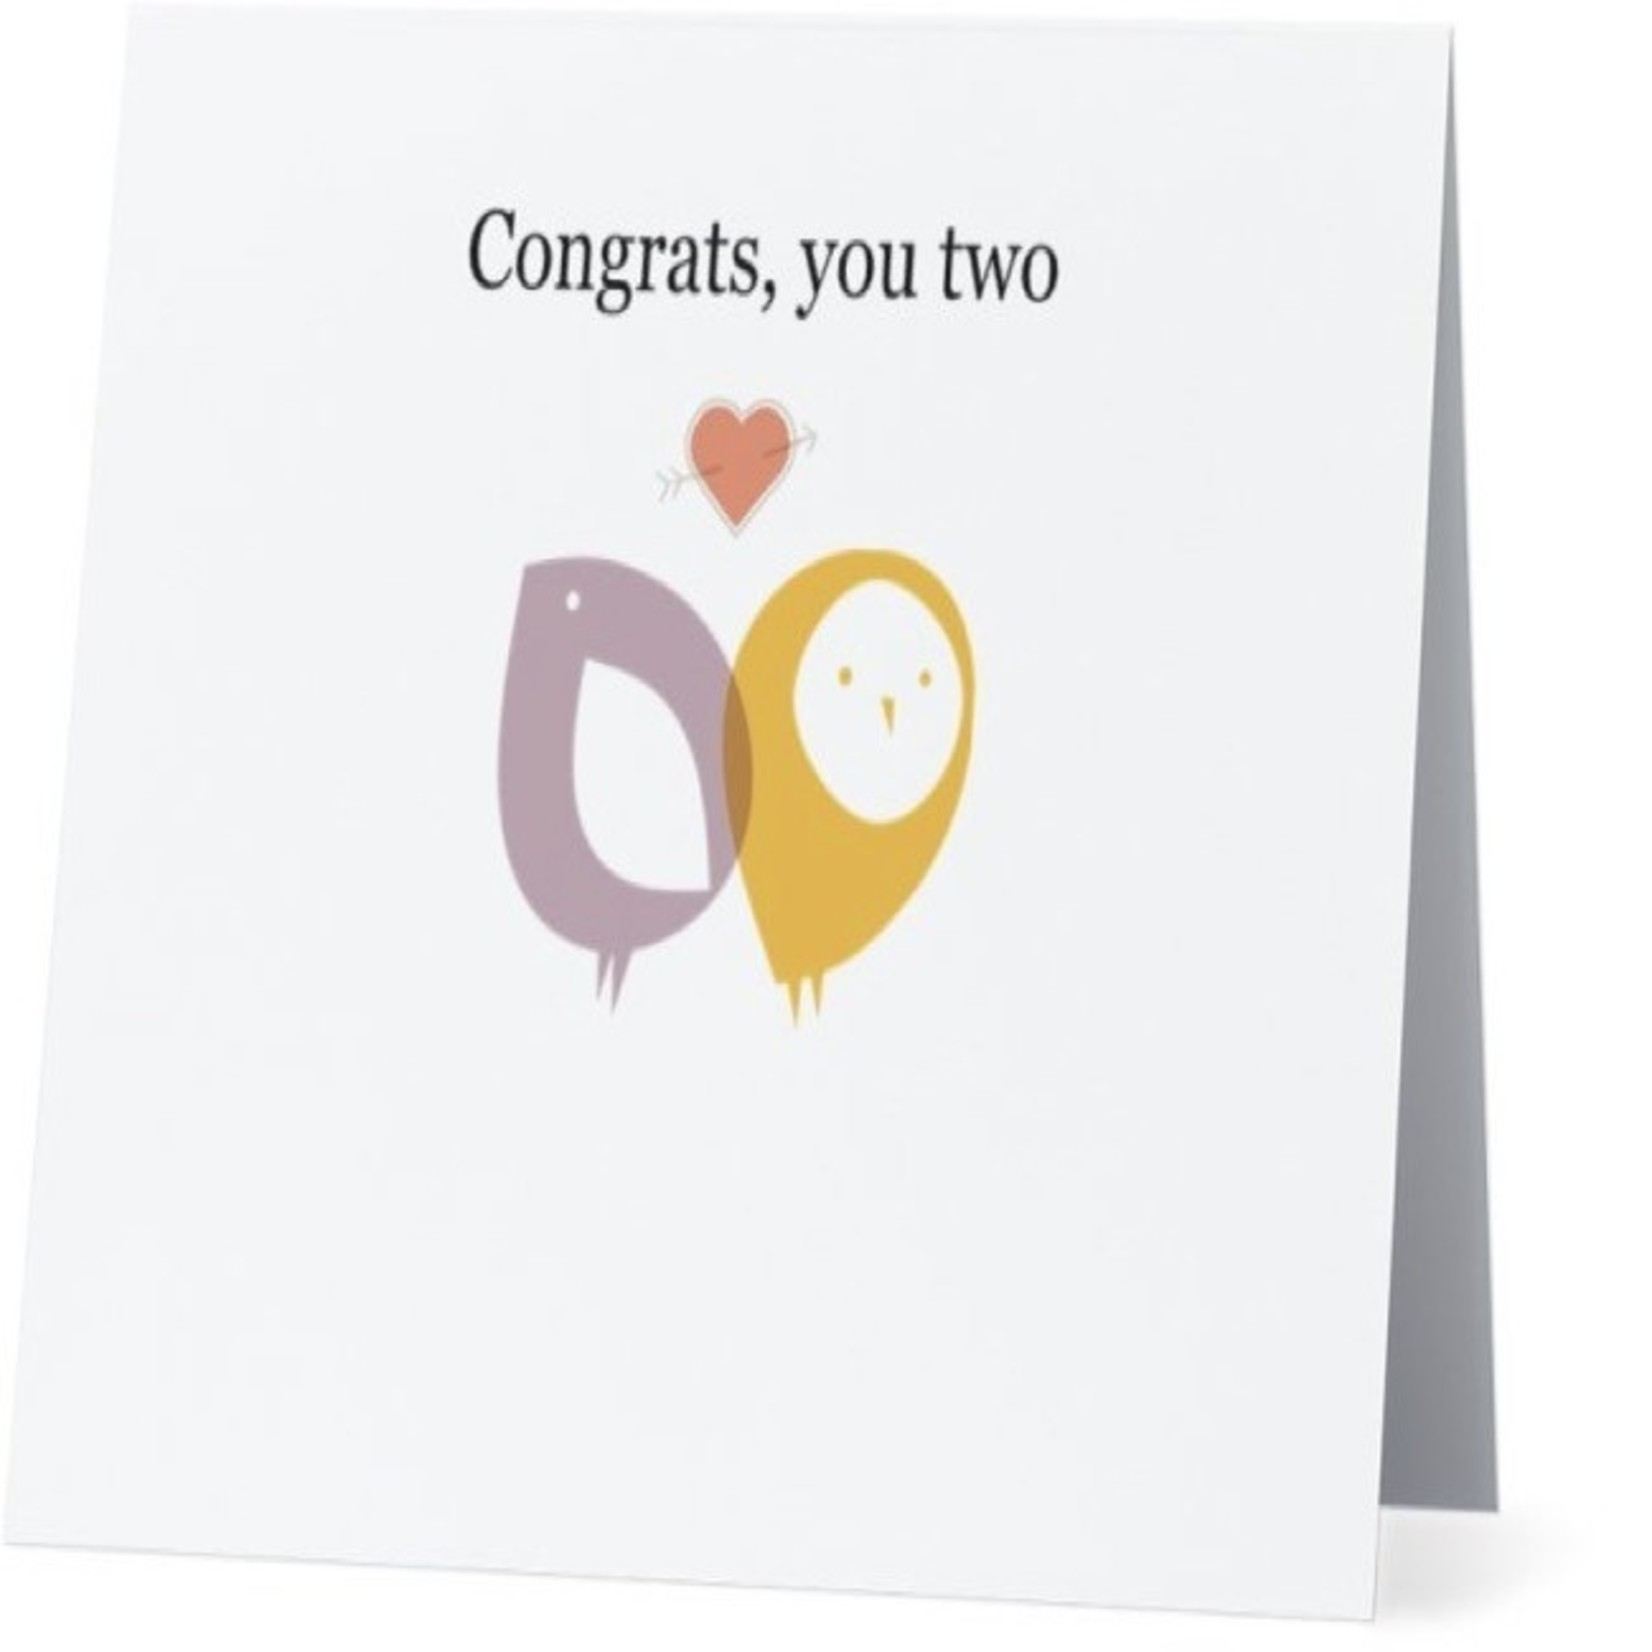 Bad Annie's Card #003 - Congrats You Two